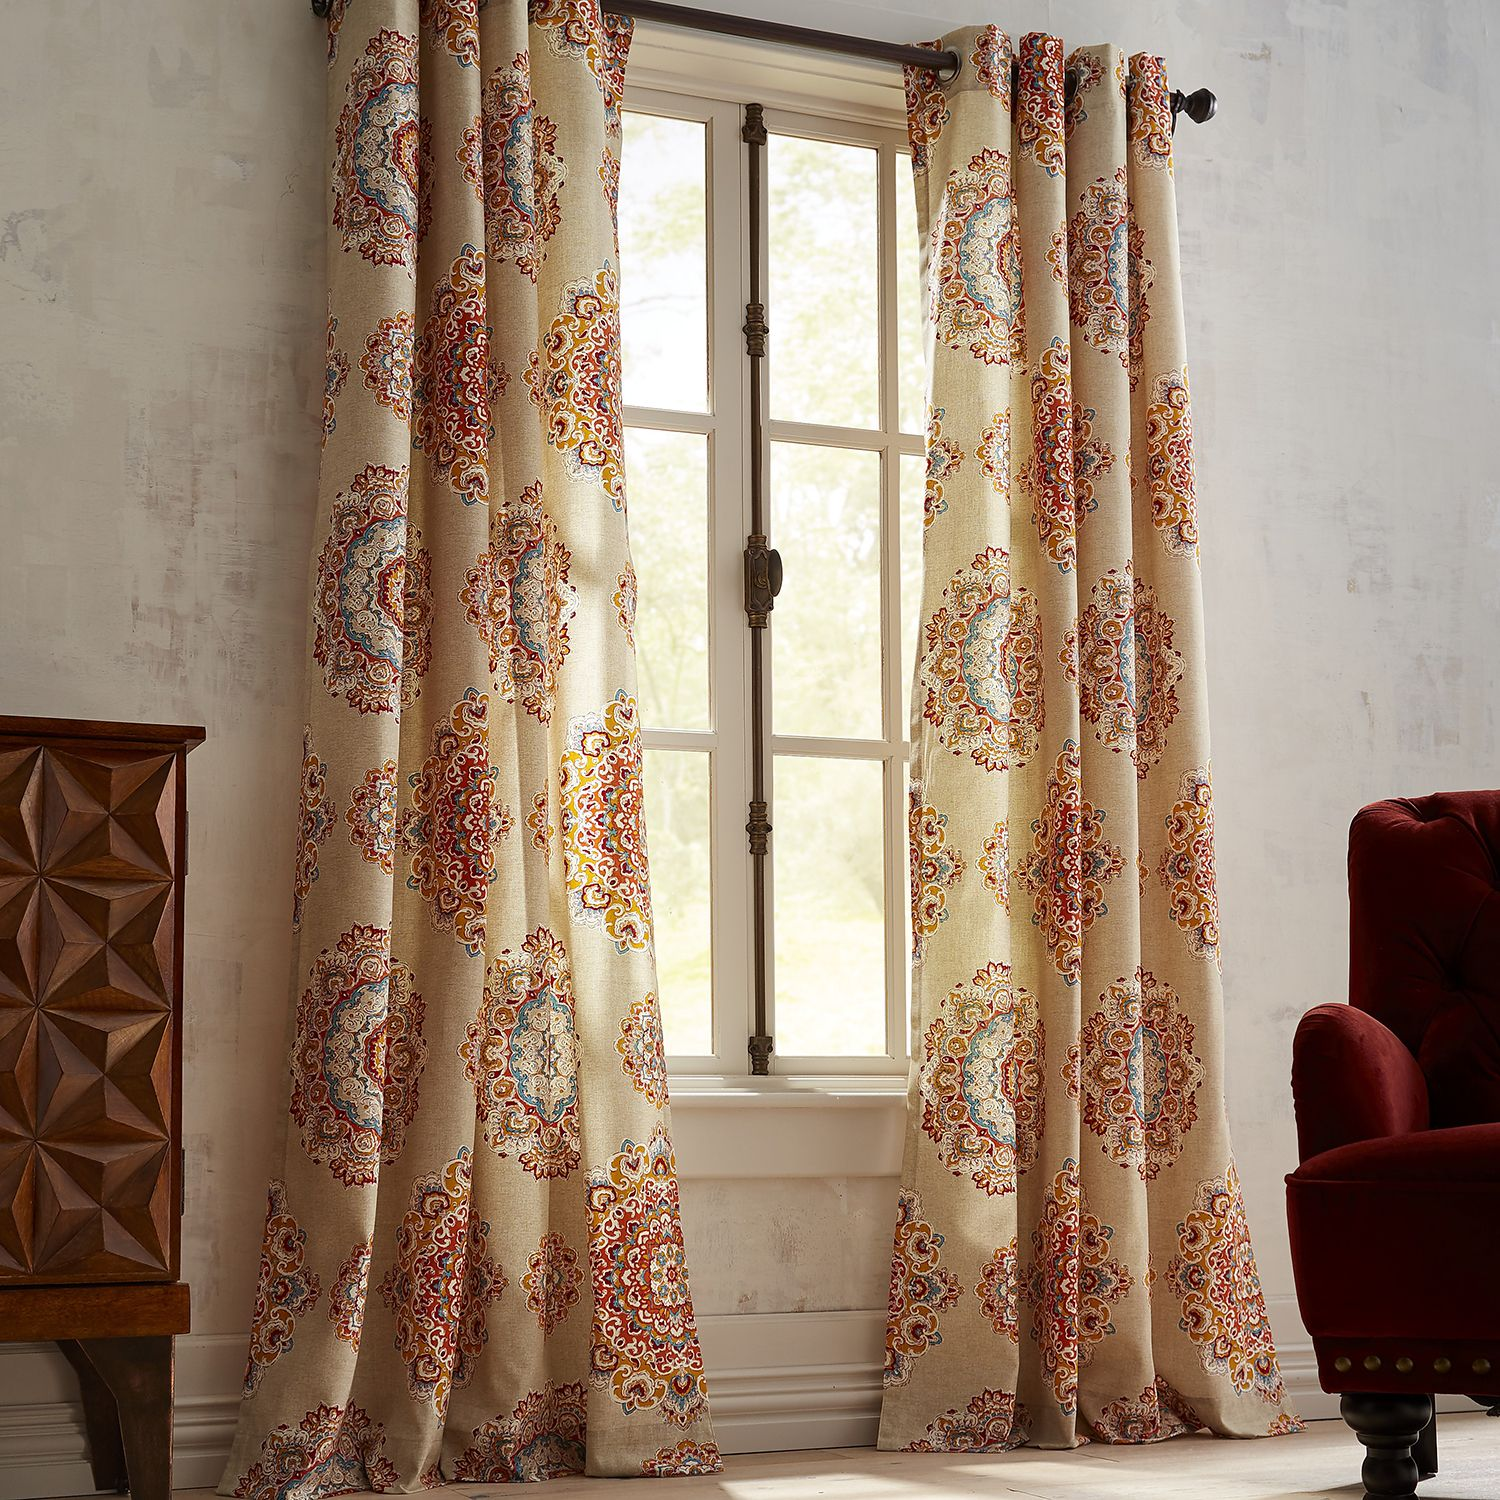 Hot pink curtains 108 inches - Suzani Jewel Curtain 108